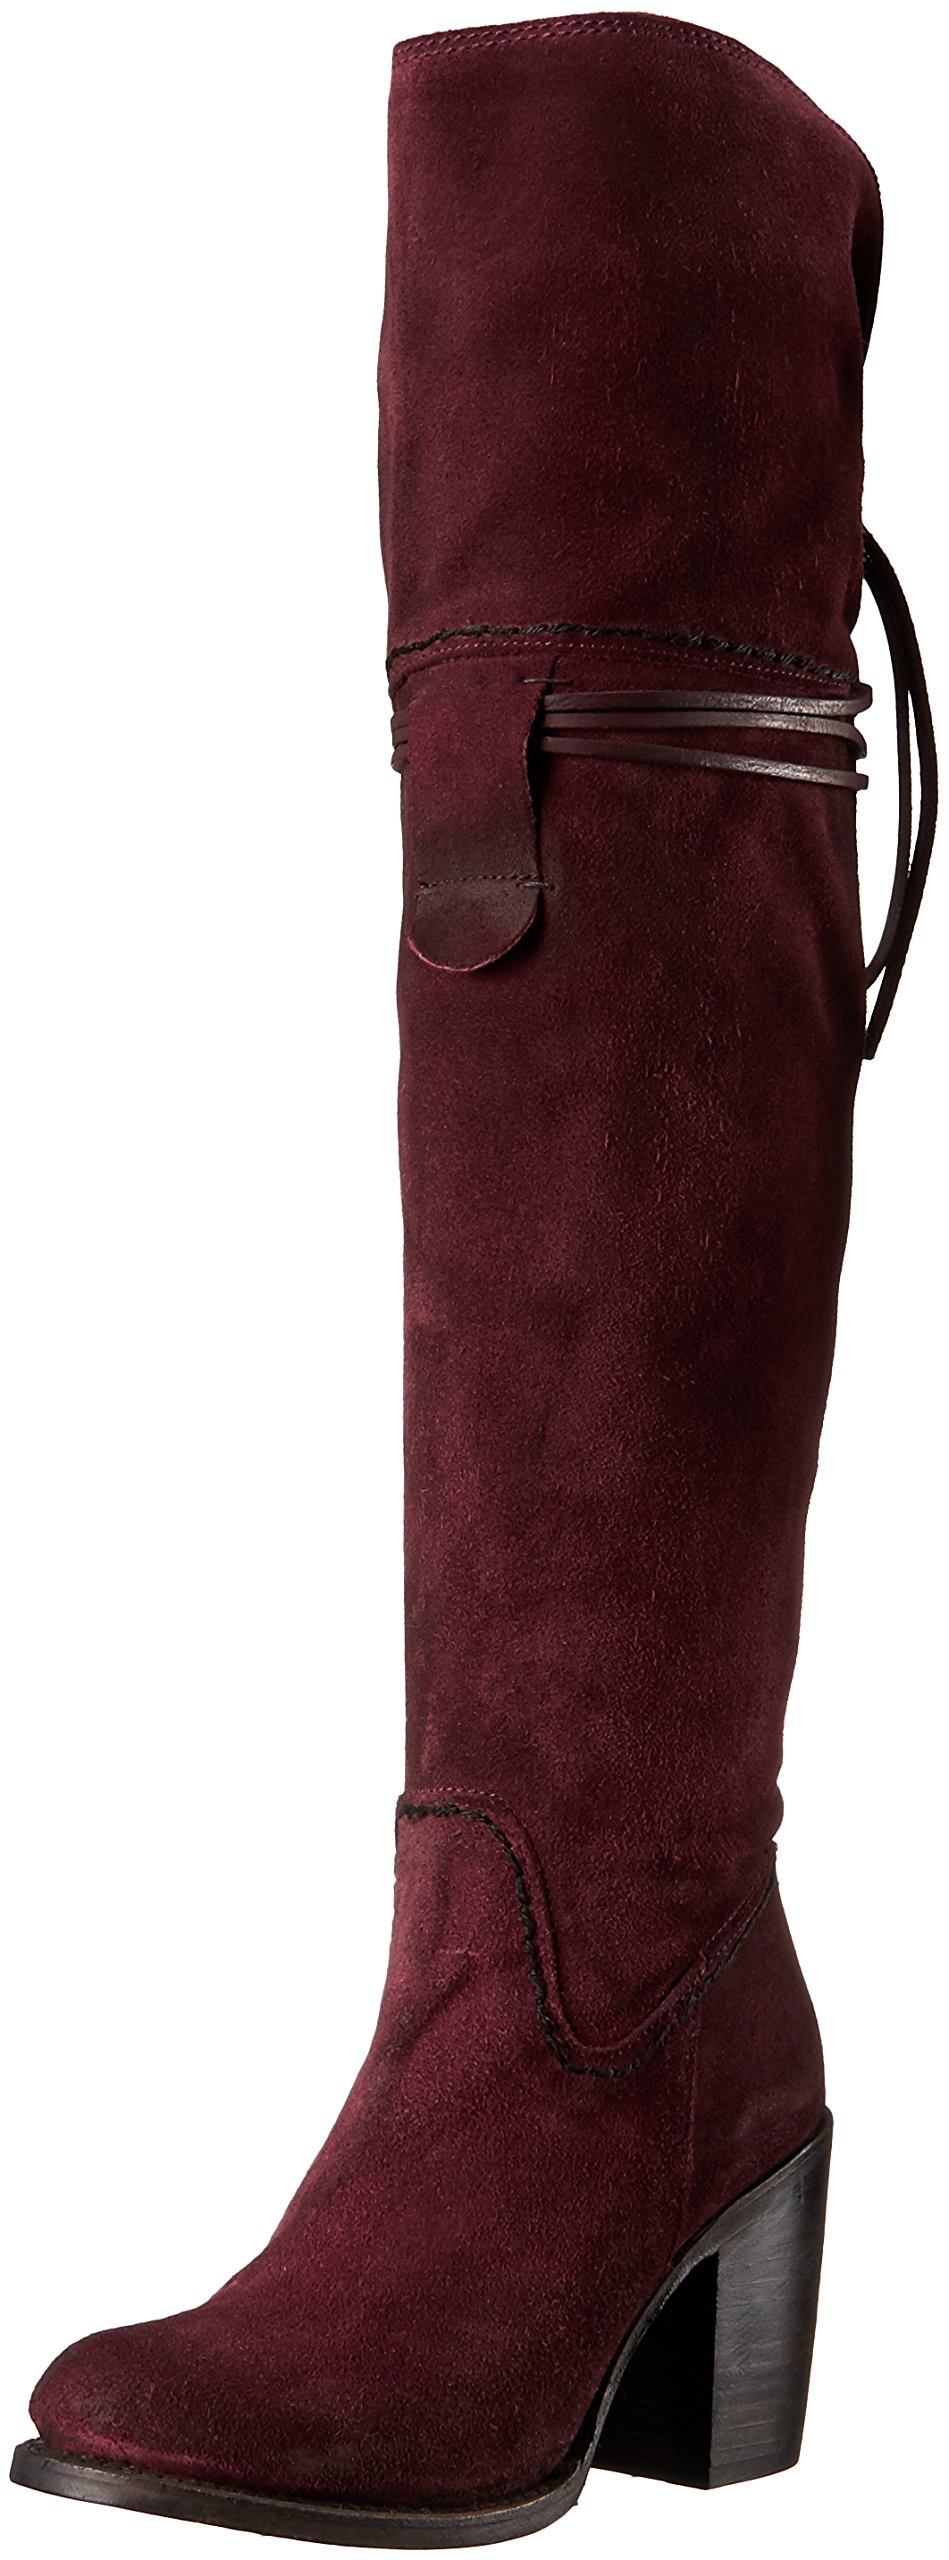 Freebird Women's Brock Riding Boot, Wine Suede, 6 M US by Freebird